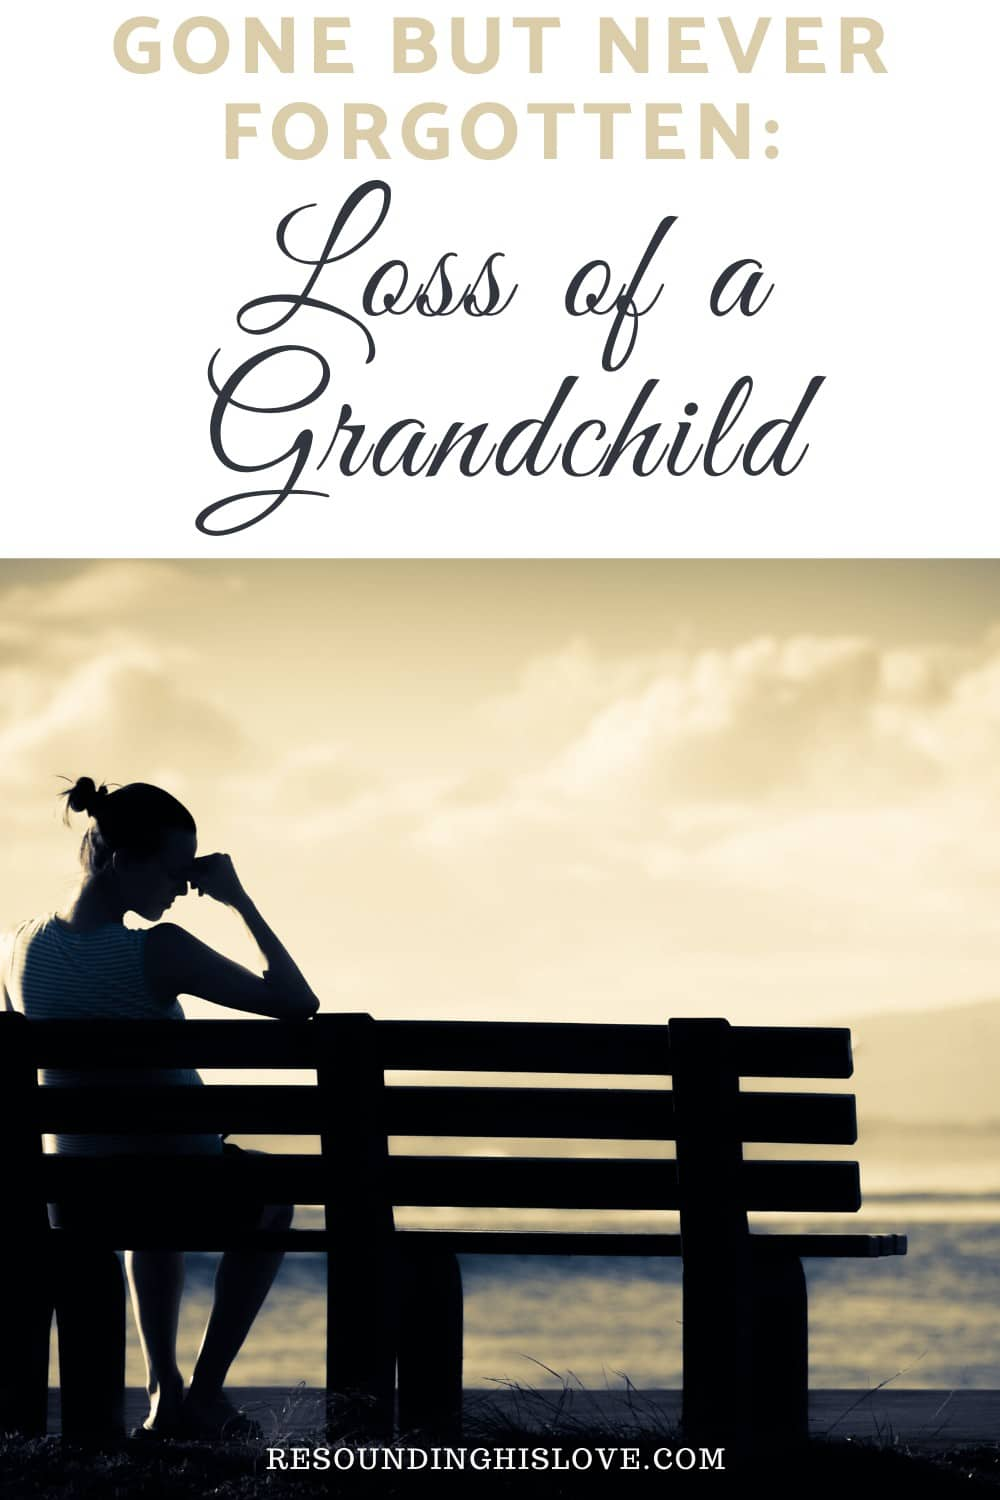 an image of a distraught woman sitting on a bench with text reading Gone But Never Forgotten Loss of a Grandchild